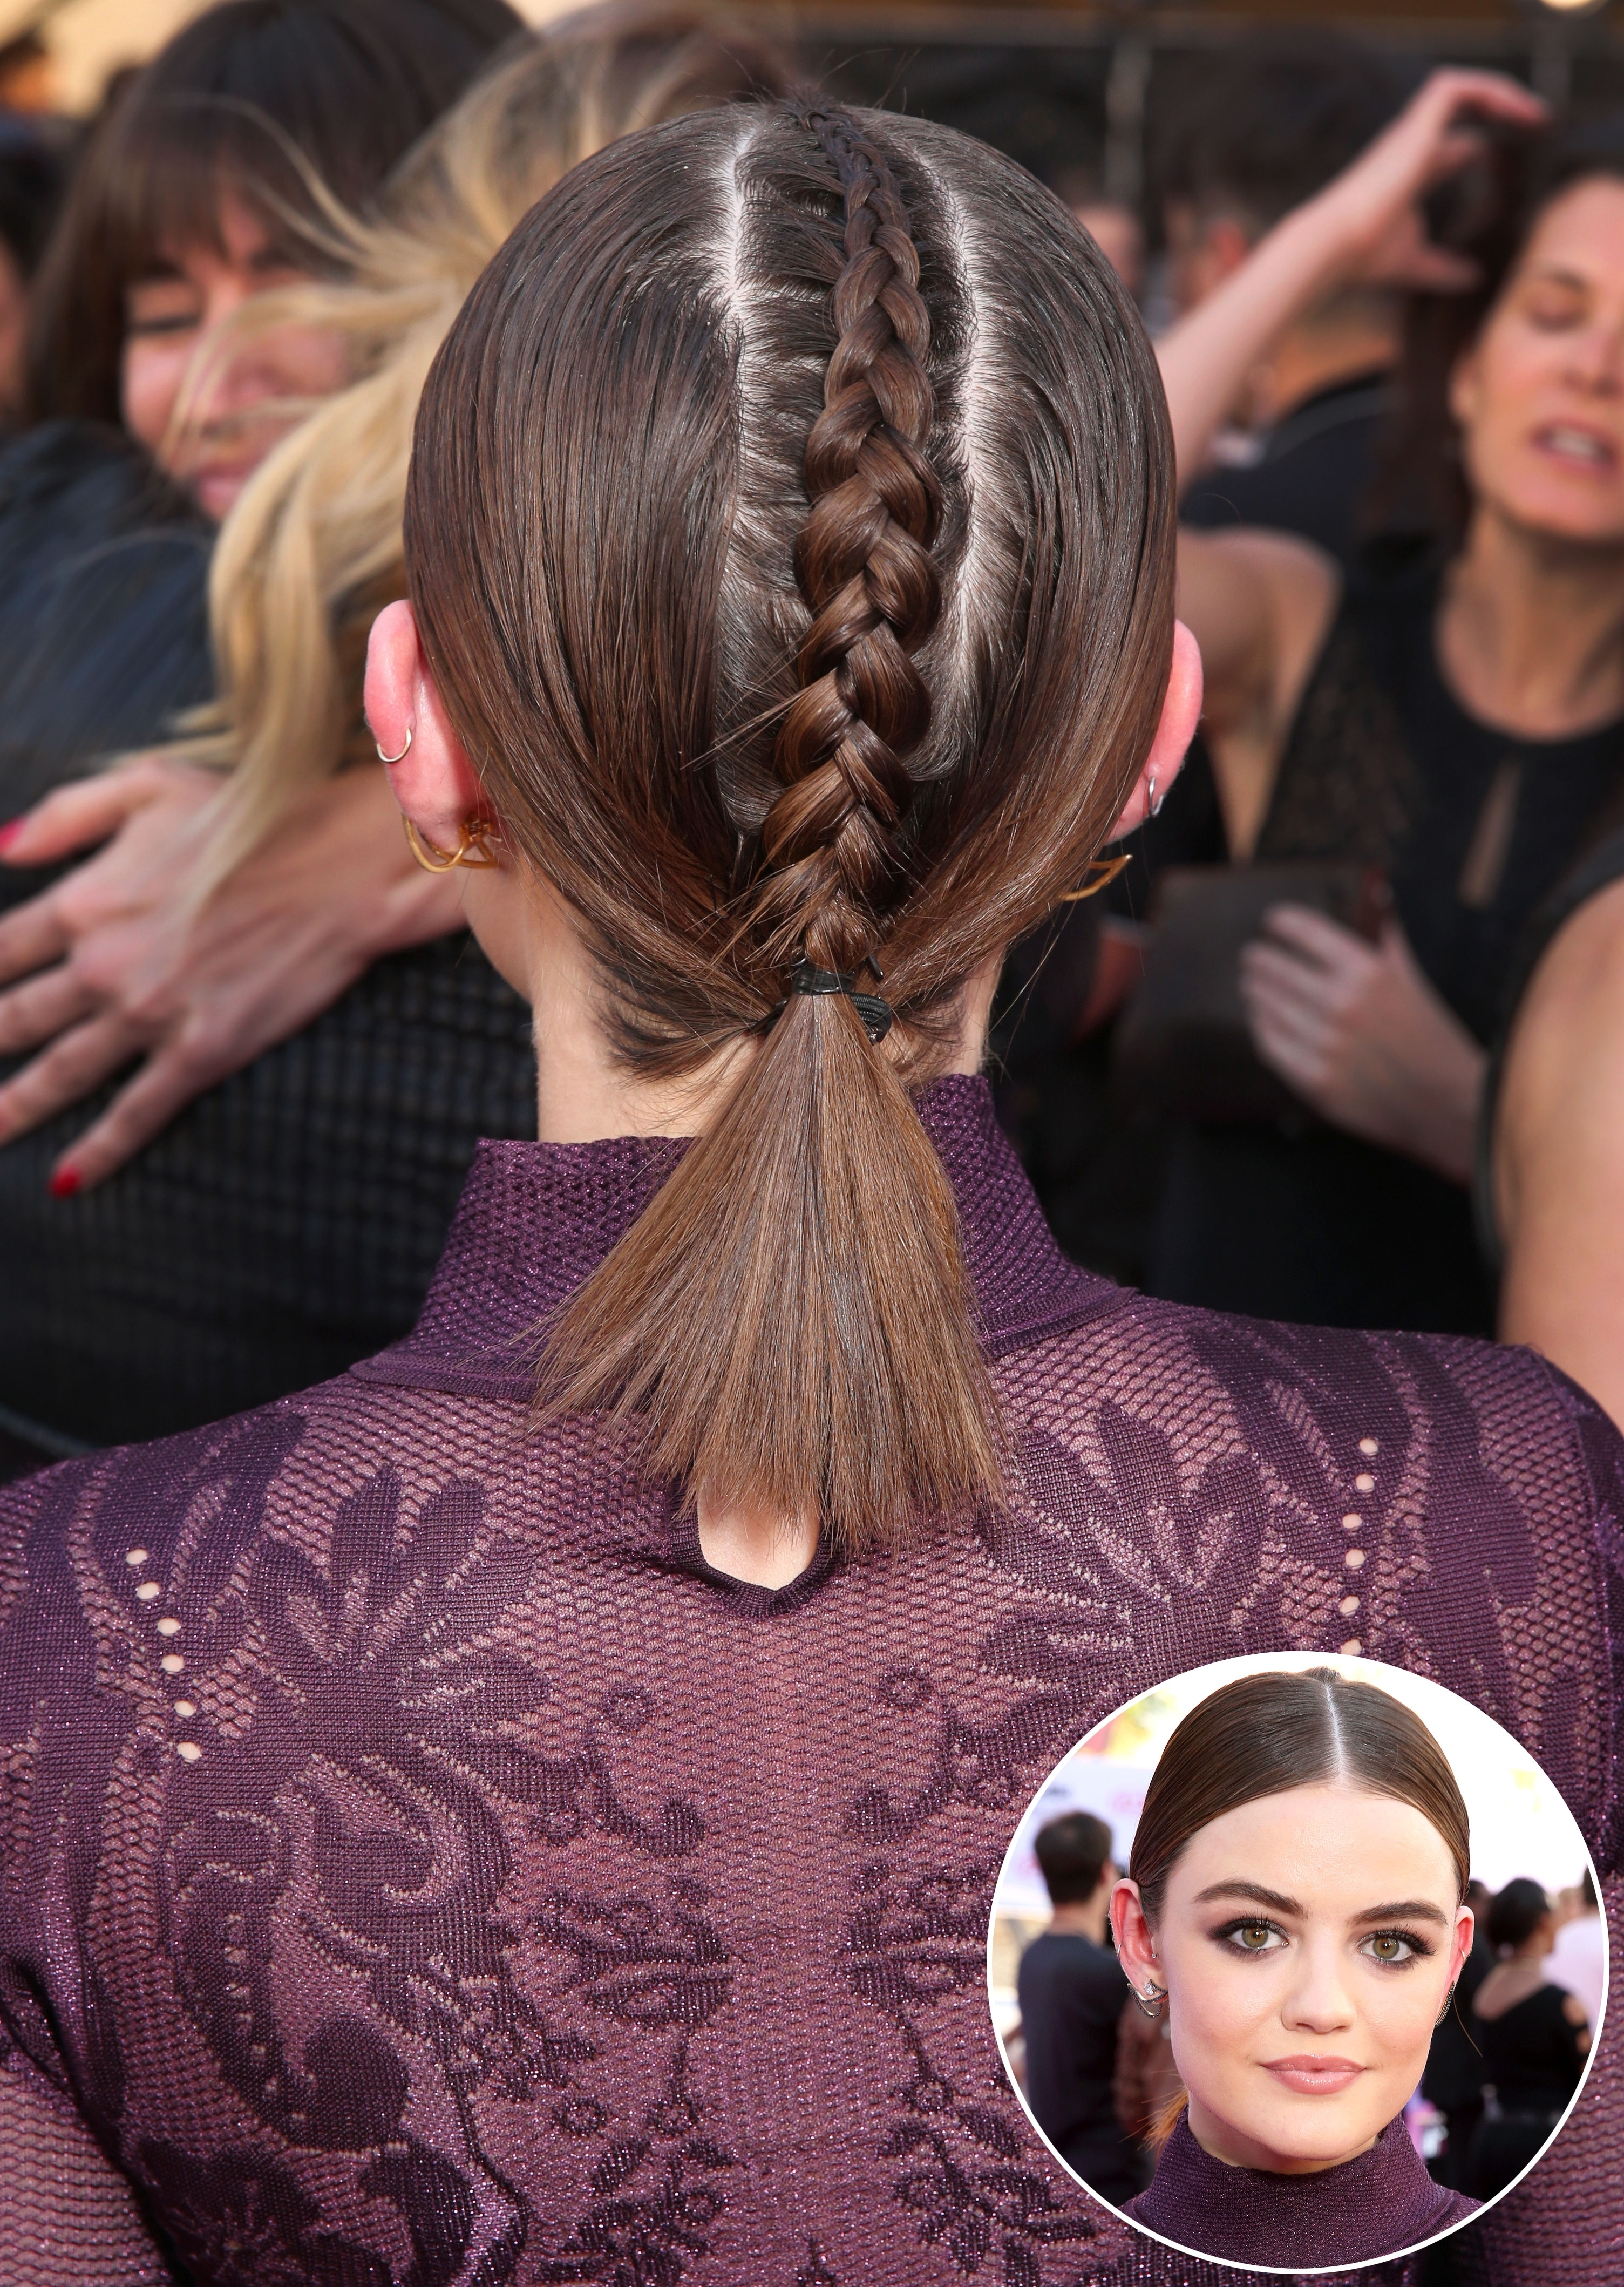 Red Carpet Braided Hairstyles To Try For Summer 2016: Photos With Most Current Artistically Undone Braid Hairstyles (View 9 of 15)